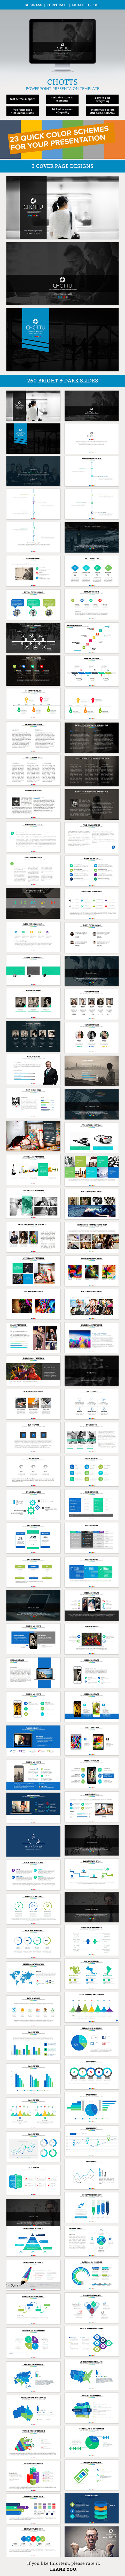 Chotts PowerPoint Template - Business PowerPoint Templates